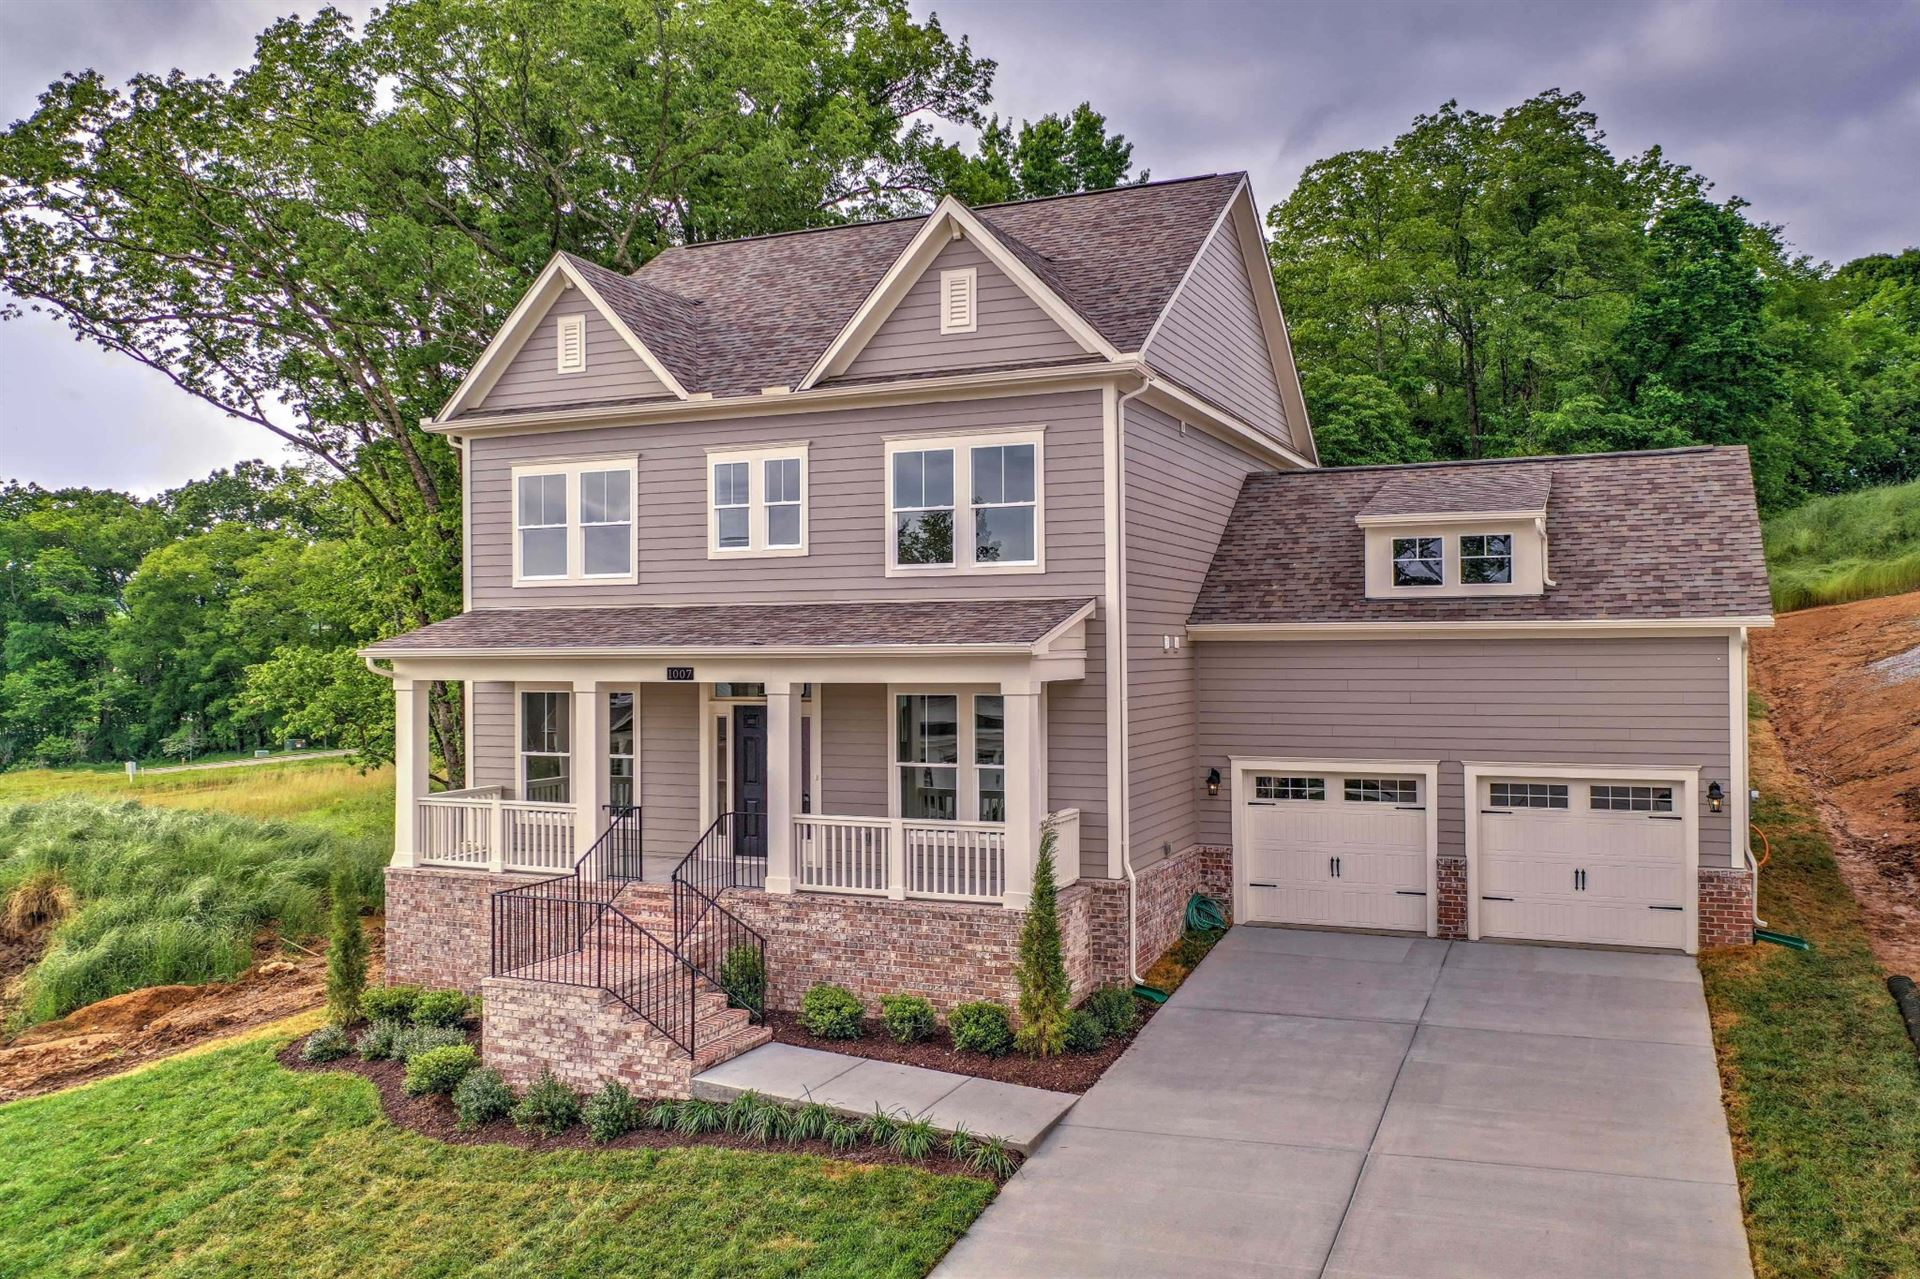 Photo of 1007 Dovecrest Way Lot 139, Franklin, TN 37067 (MLS # 2152102)